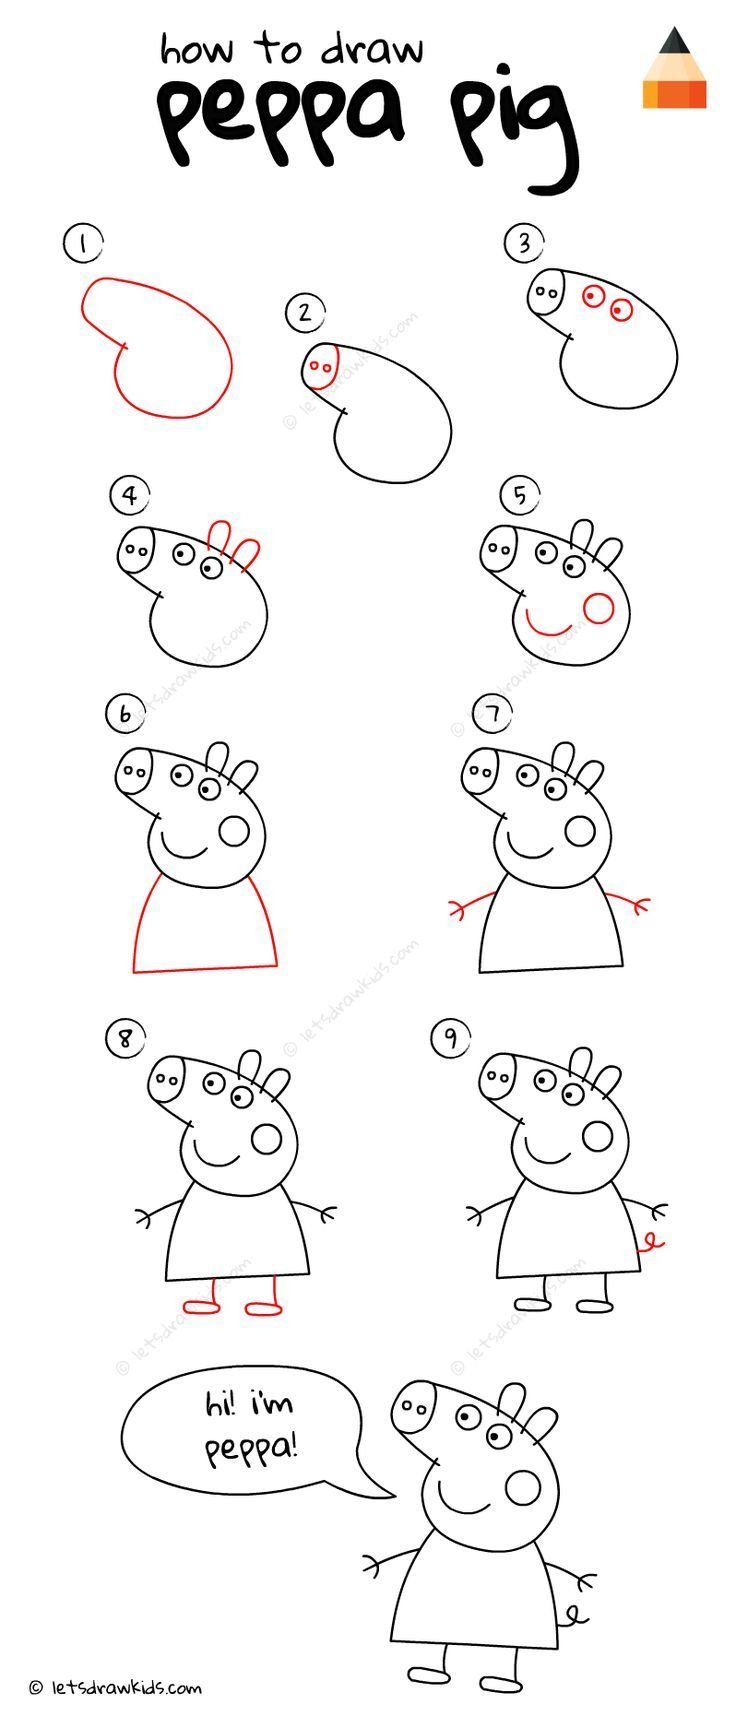 How To Draw Peppa Pig – #draw #Peppa #Pig #tekenen